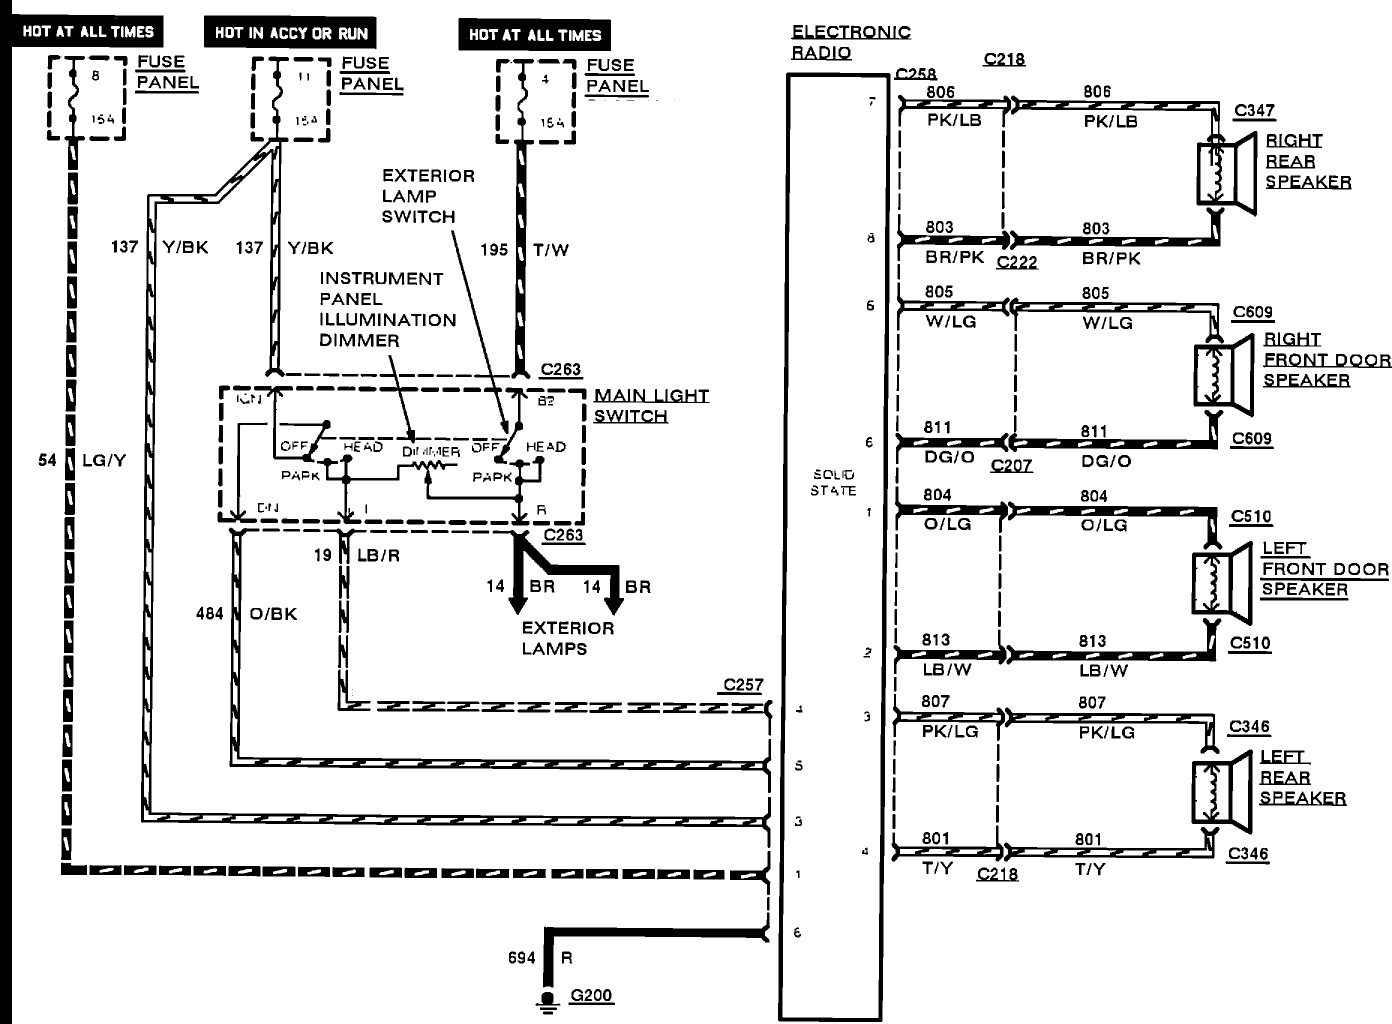 2005 ford focus alternator wiring diagram of a single phase motor with two capacitors 2014 collection